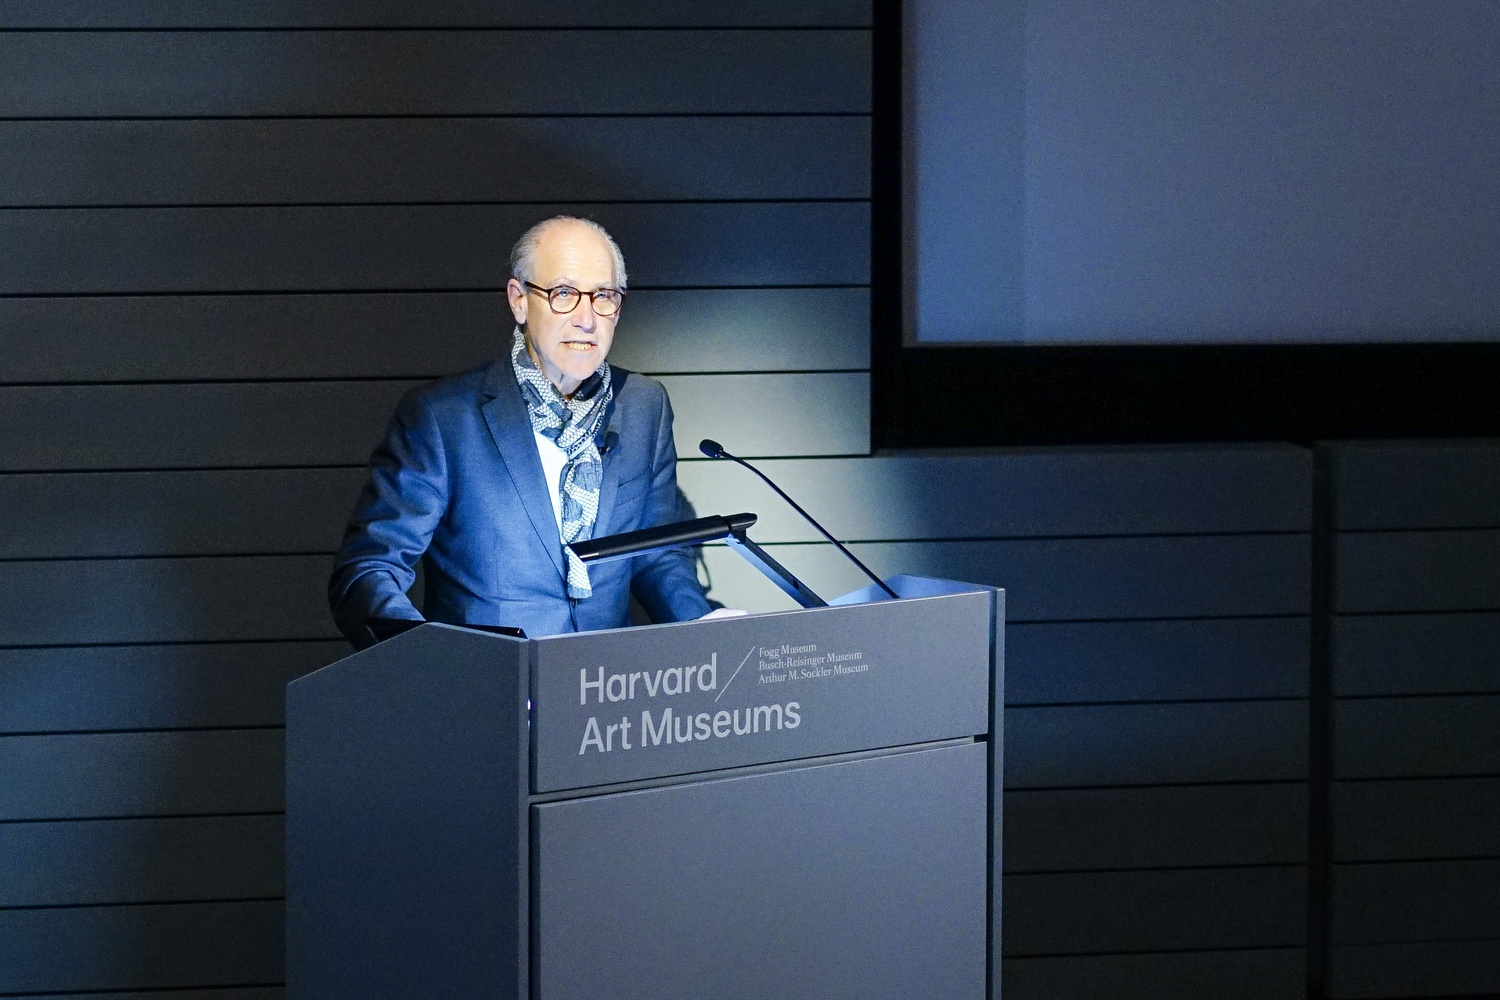 Glenn D. Lowry, director of New York's Museum of Modern Art, discusses contemporary Middle Eastern art at the Annual Henri Zerner Lecture at the Harvard Art Museums.